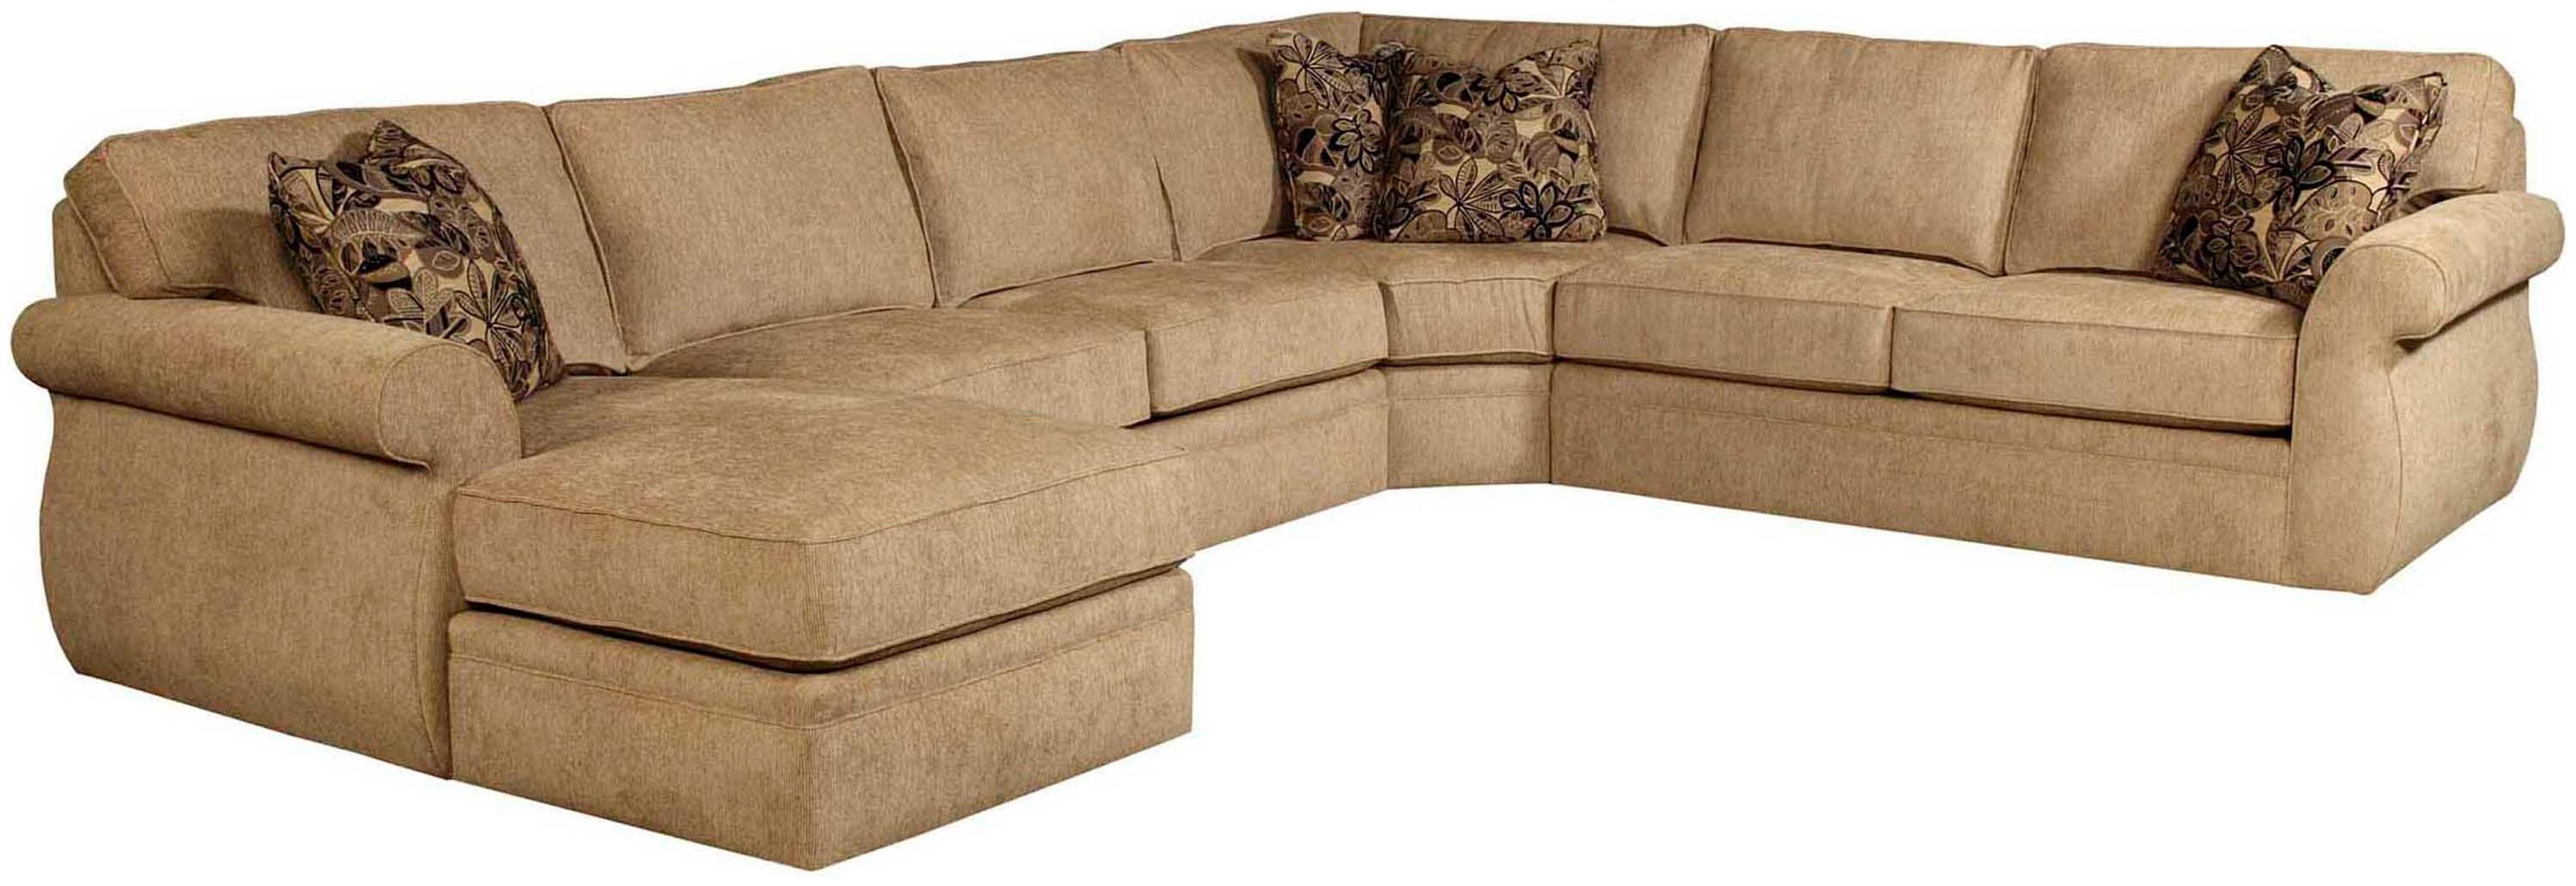 Furniture: Modern Chaise Sectional With Classic Comfortable Design Regarding Long Sectional Sofa With Chaise (View 19 of 20)